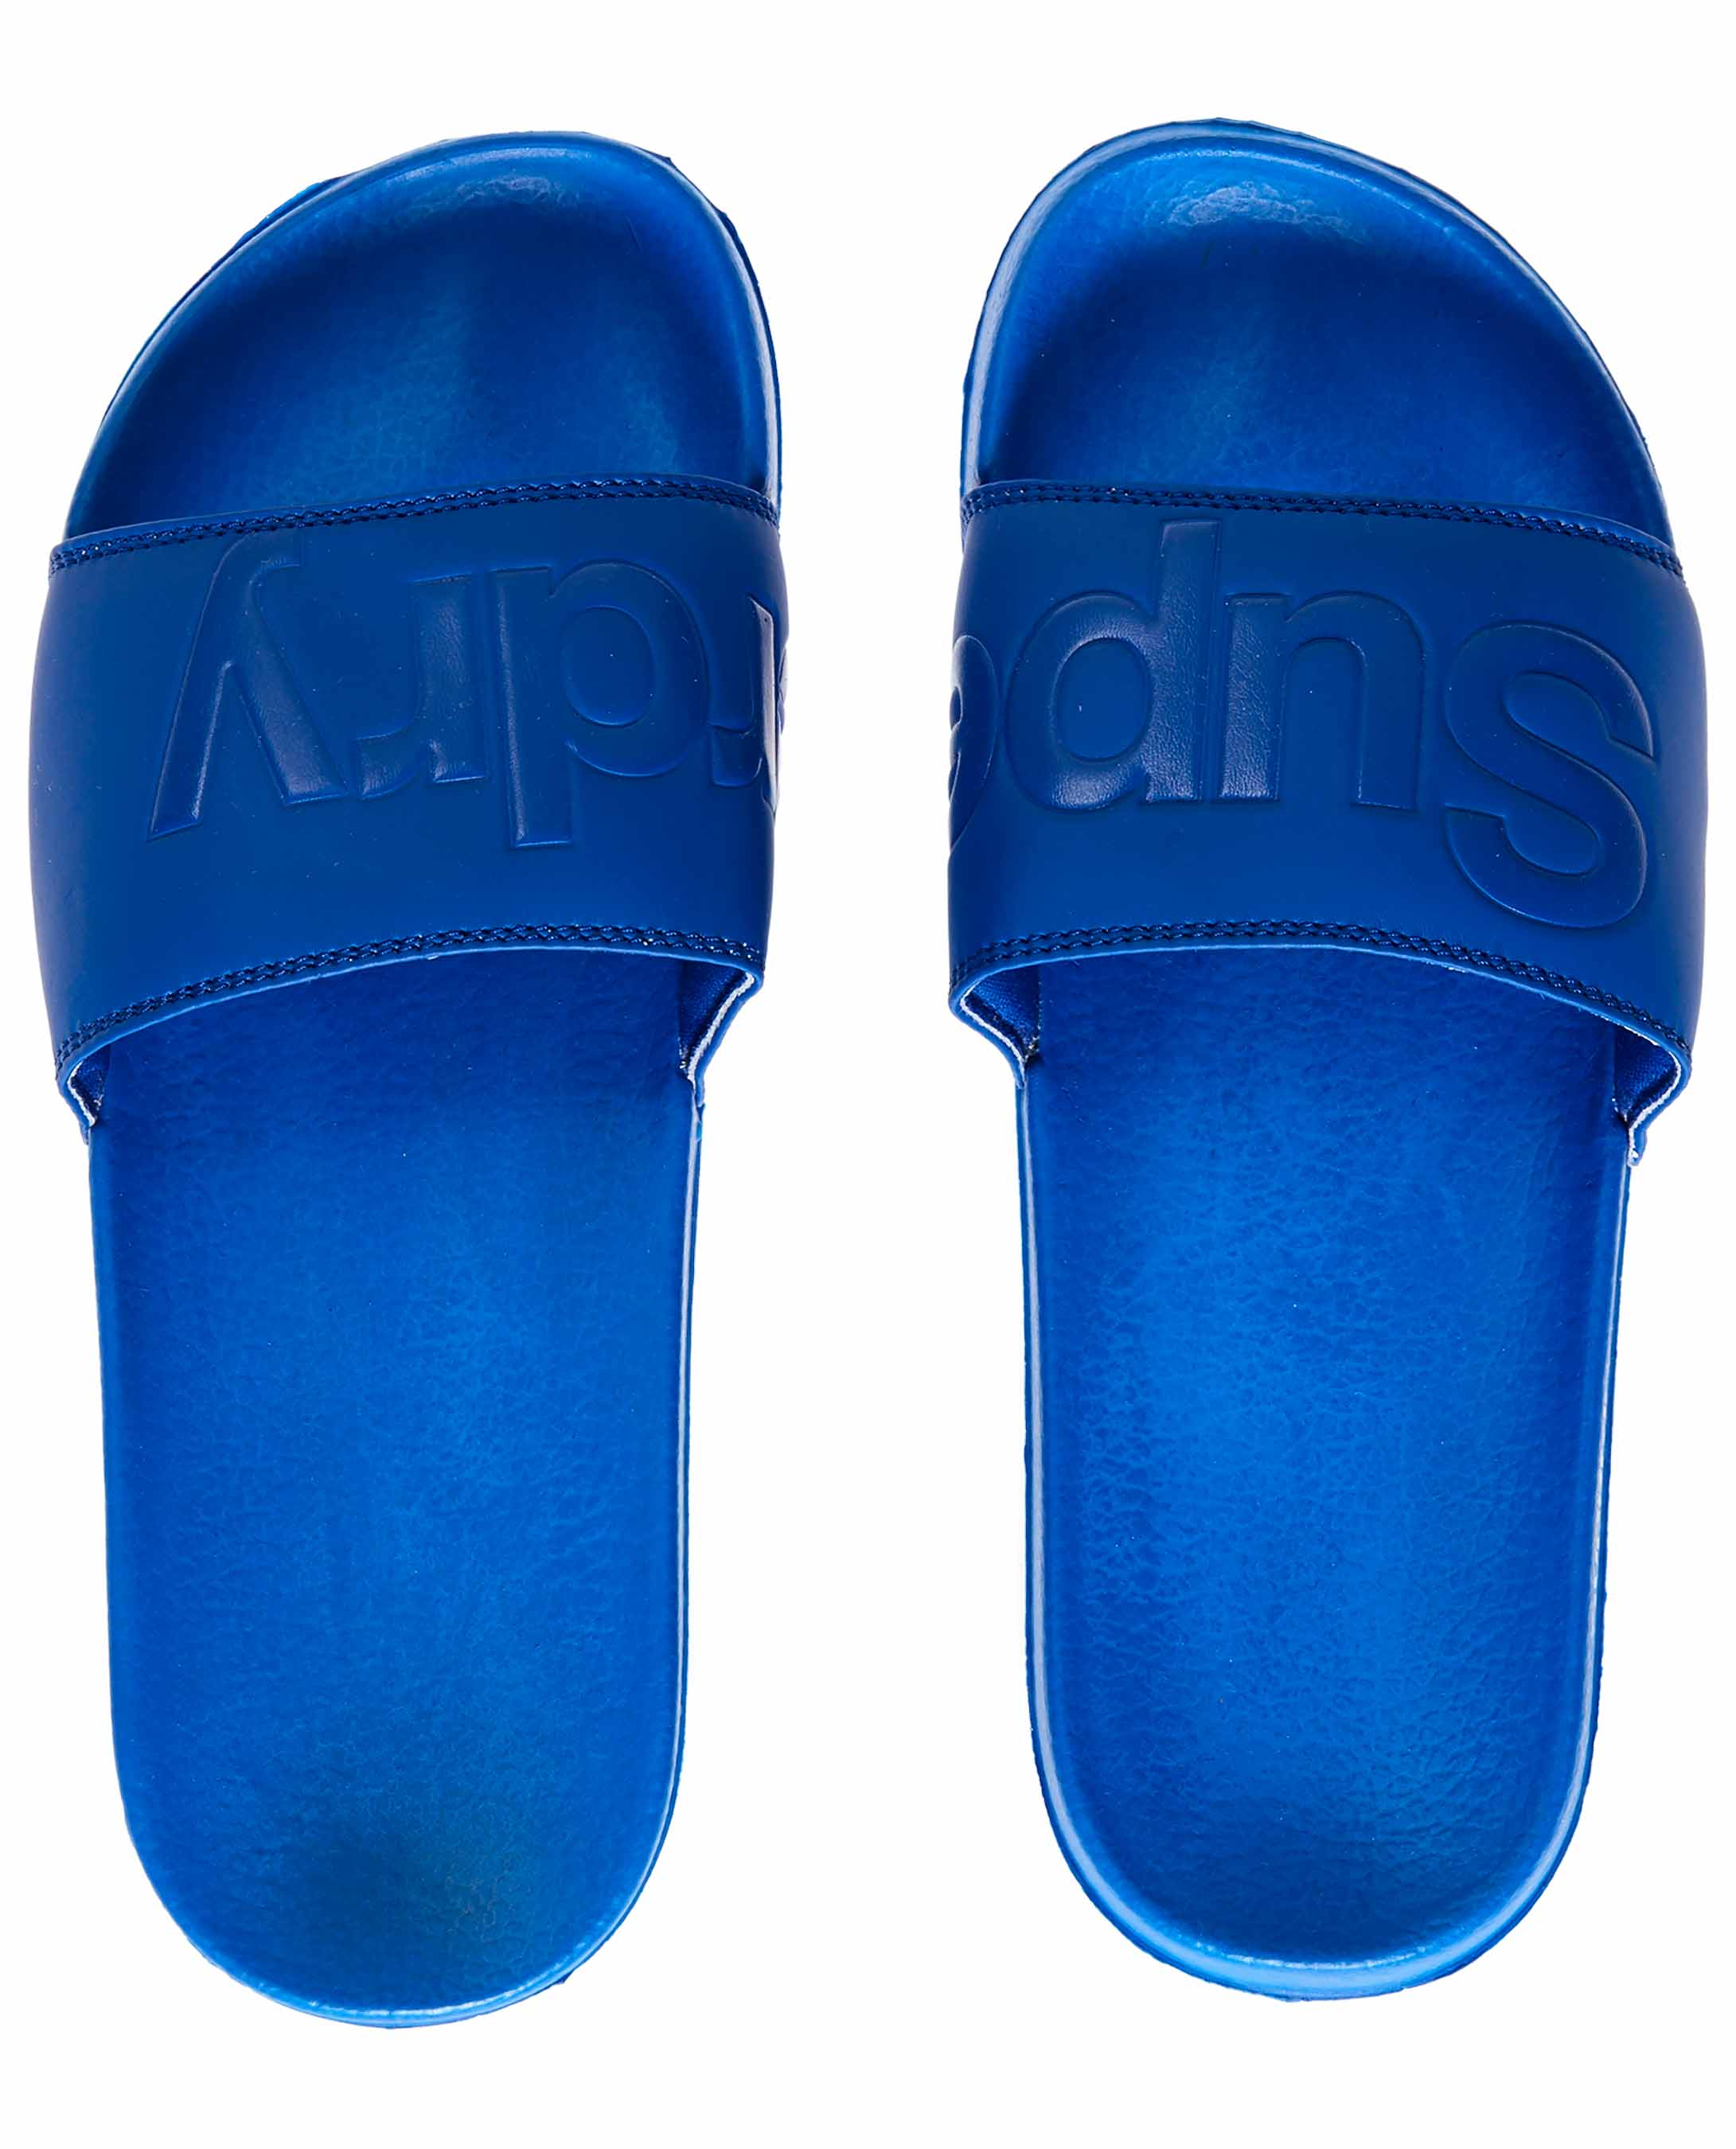 Superdry Pool Sliders - Nautical Blue - £14.99.jpg